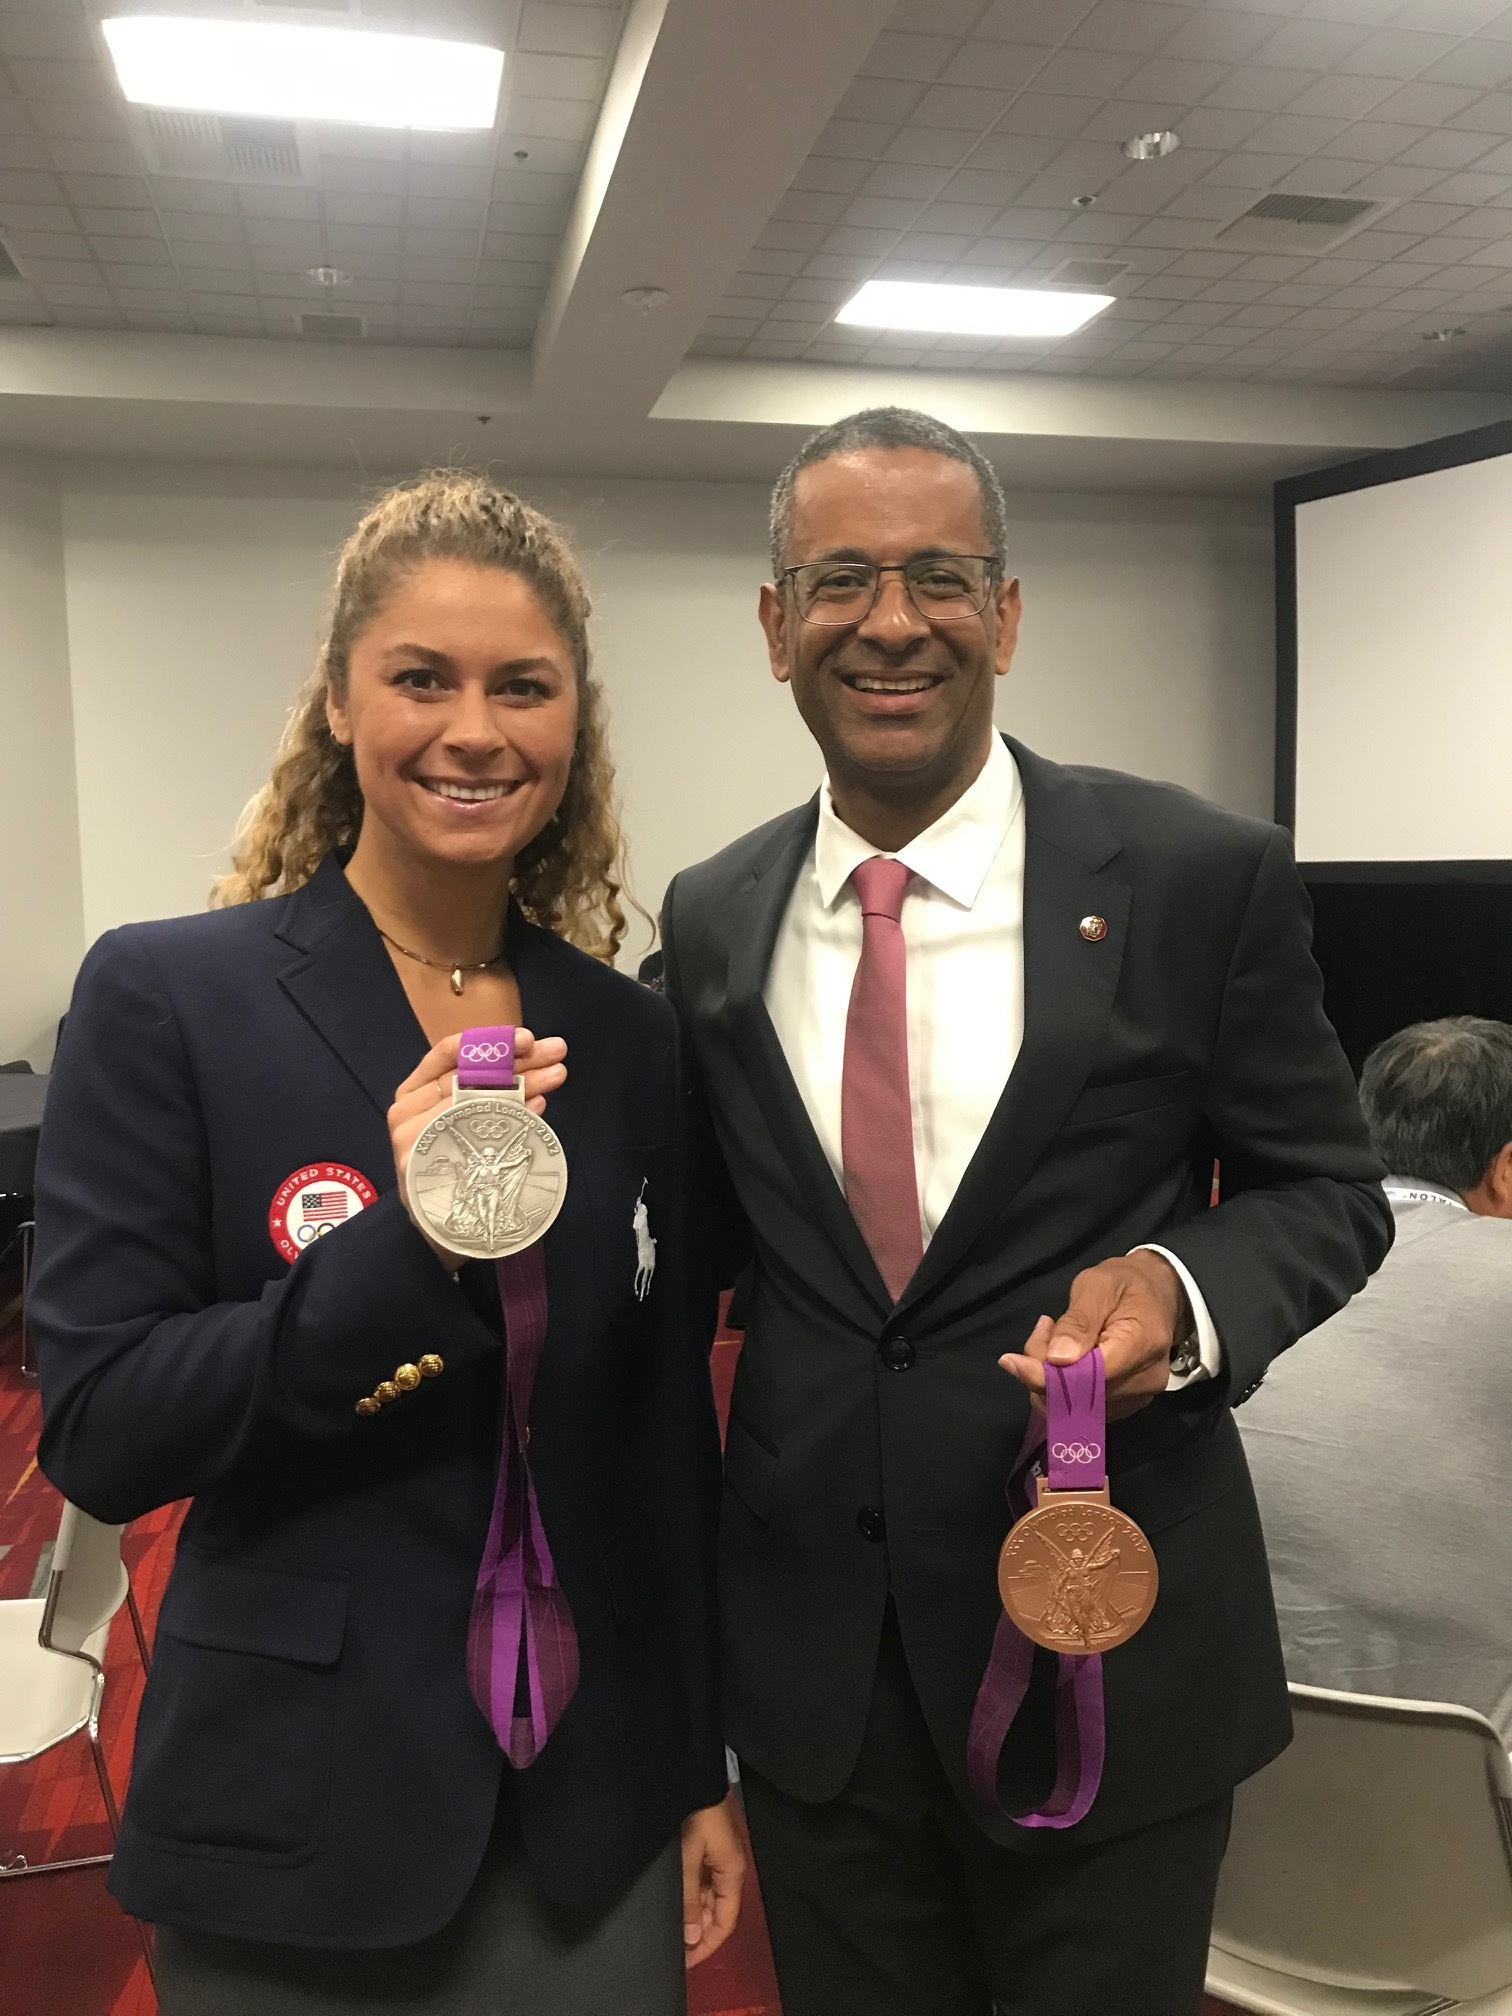 3-time USA swimming Olympian Elizabeth Beisel with AIA IR President Thierry Paret, FAIA at the IR Design Awards during A'19.    Beisel's heartfelt words on striving for excellence resonated with the crowd and furthered the collaboration between AIA IR and the Dow- IOC carbon partnership towards a sustainable built future.